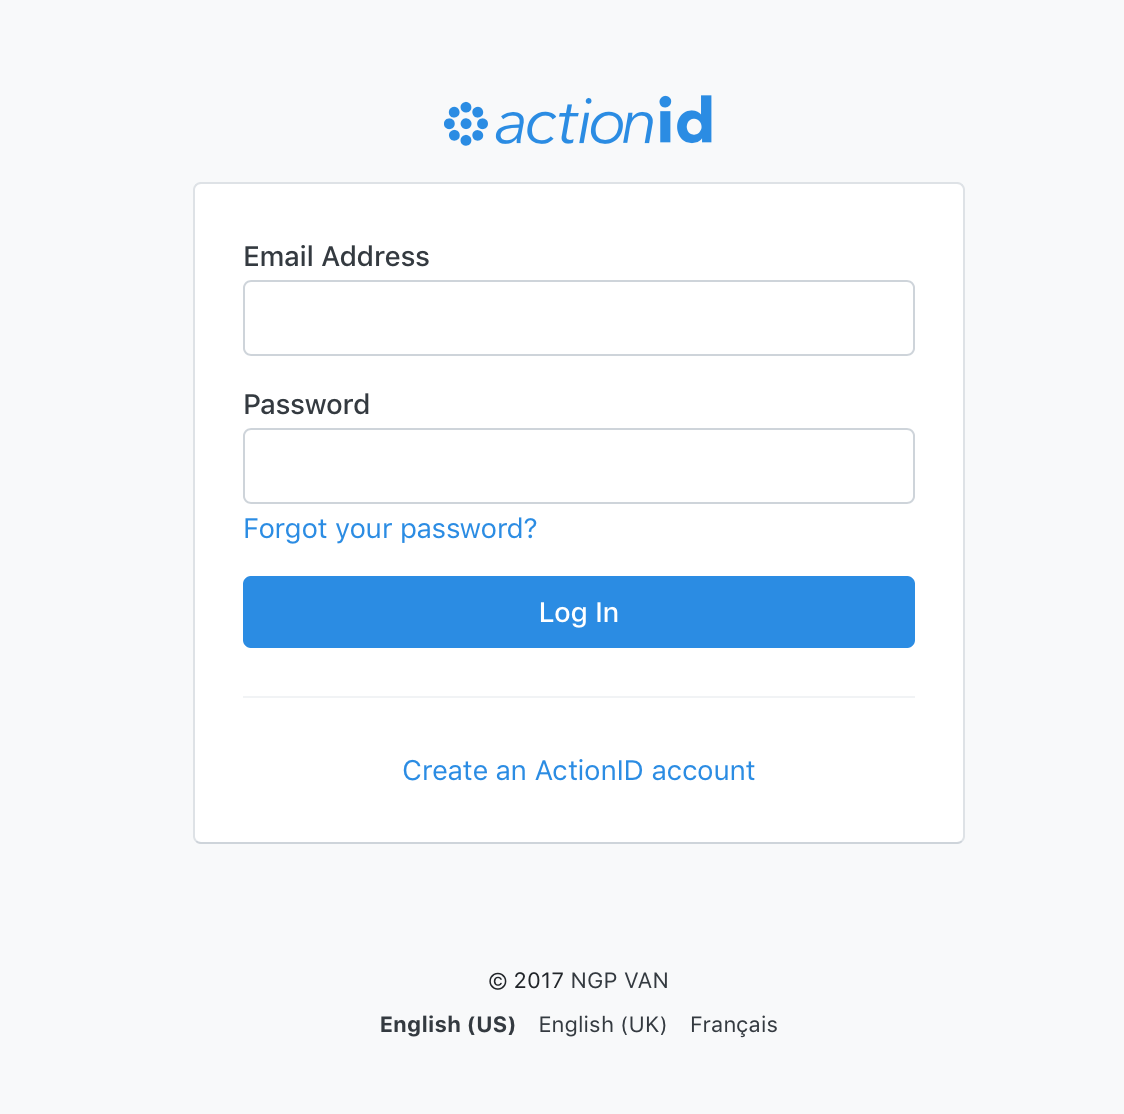 actionid-new.png